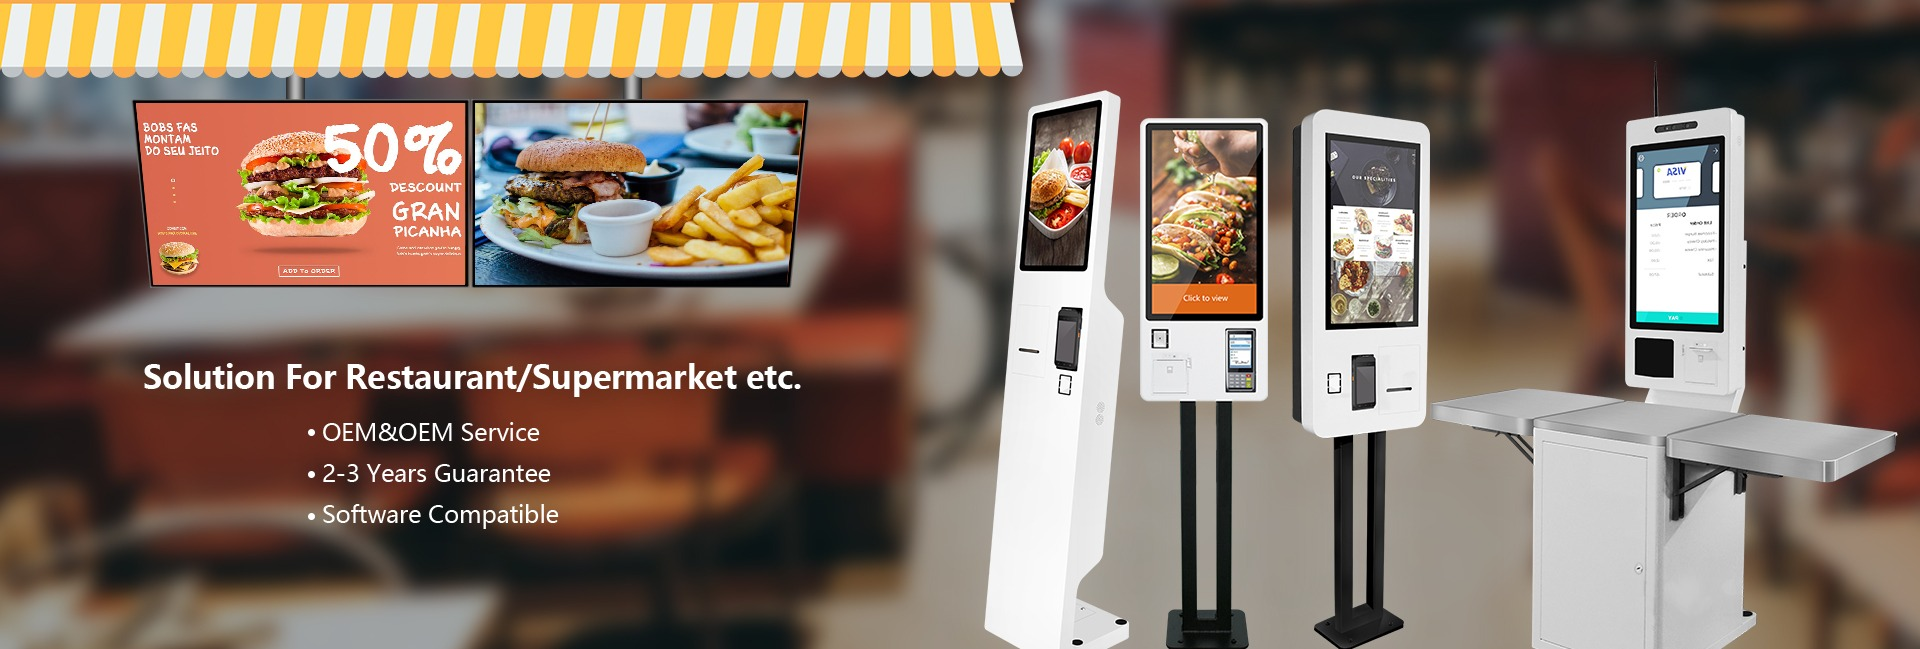 food ordering sites Digital Screens and self order kiosk